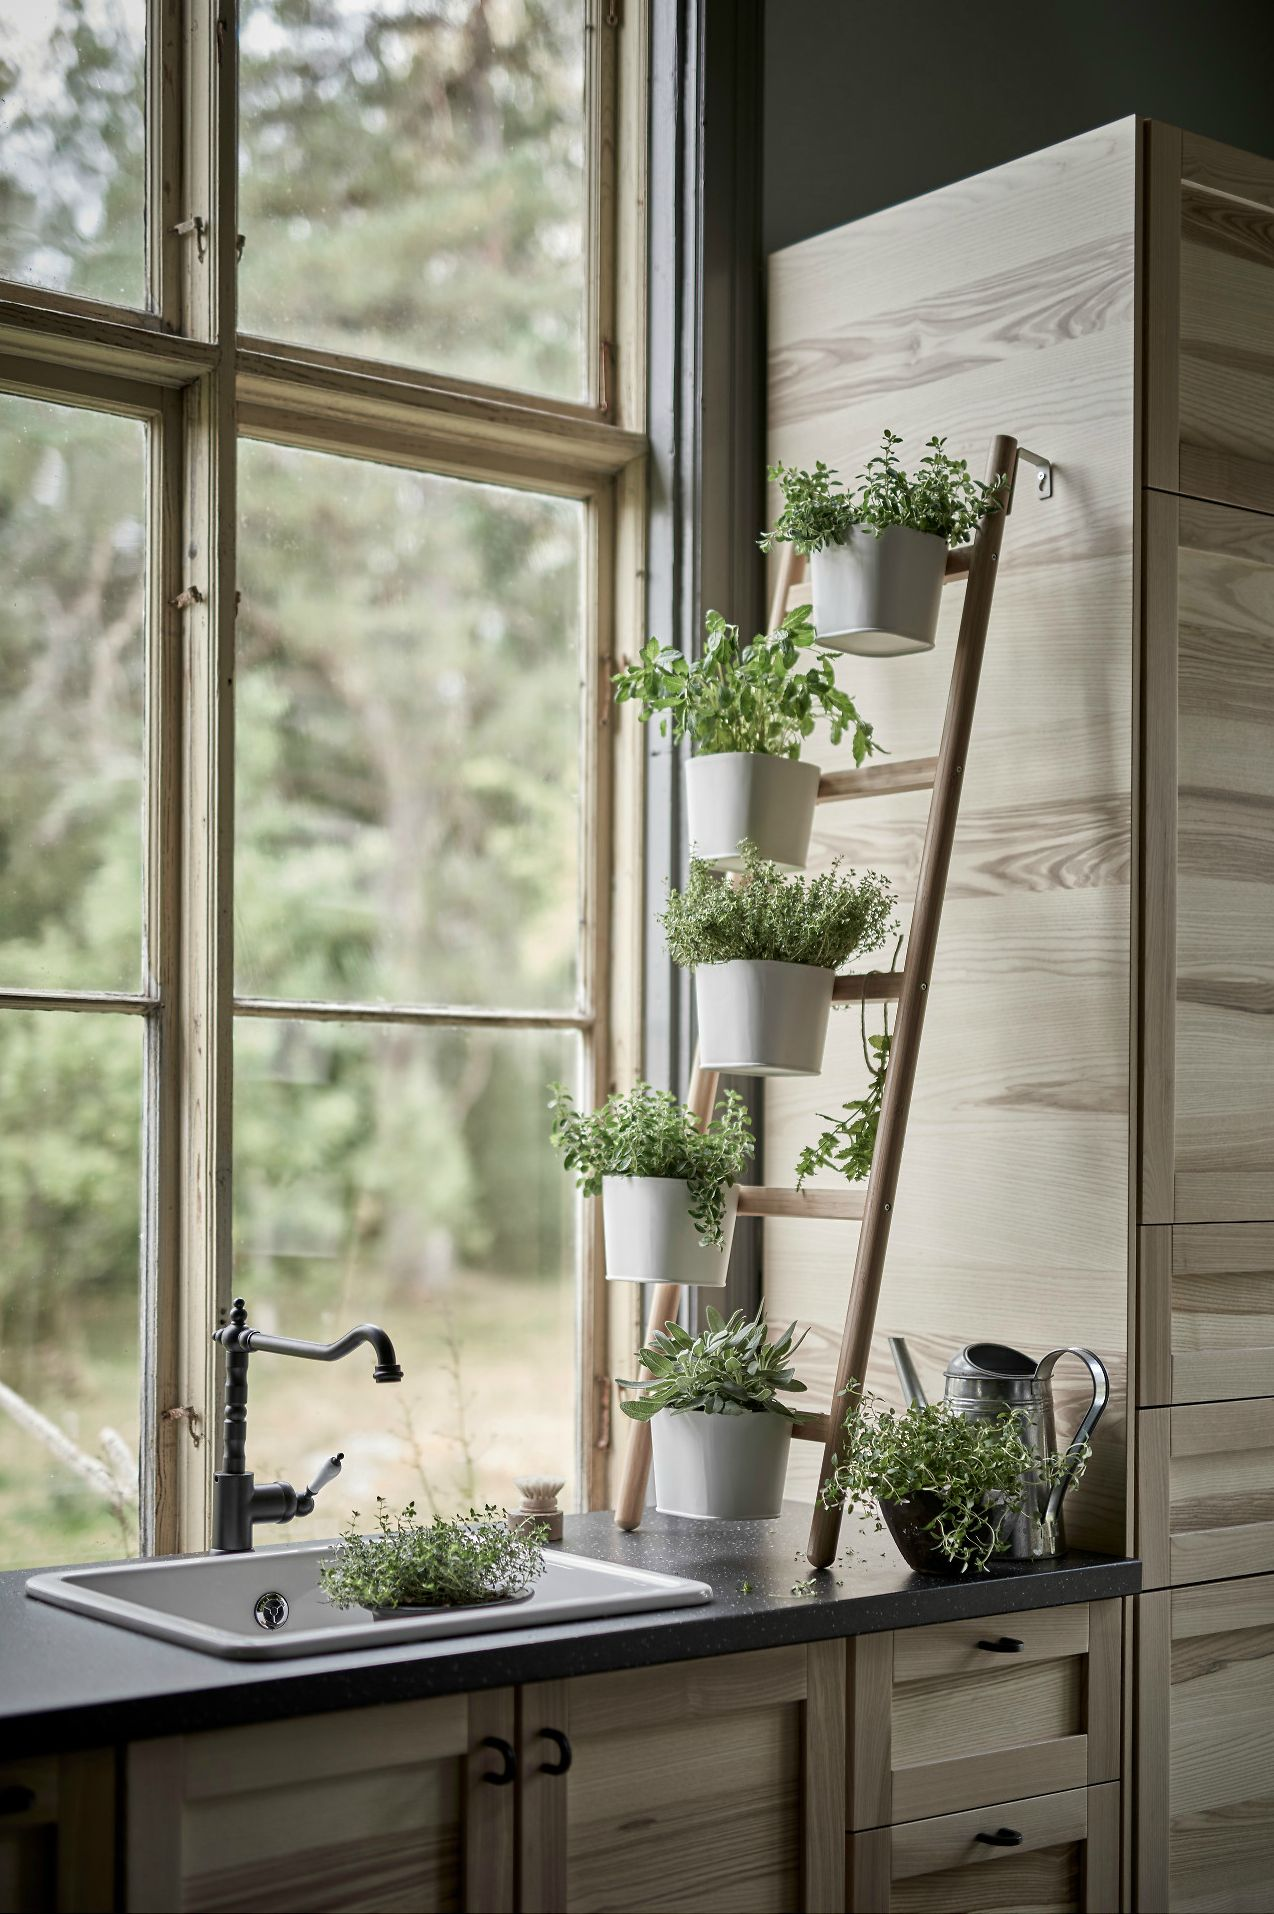 les 25 meilleures id es de la cat gorie support plante sur pinterest supports plantes diy. Black Bedroom Furniture Sets. Home Design Ideas